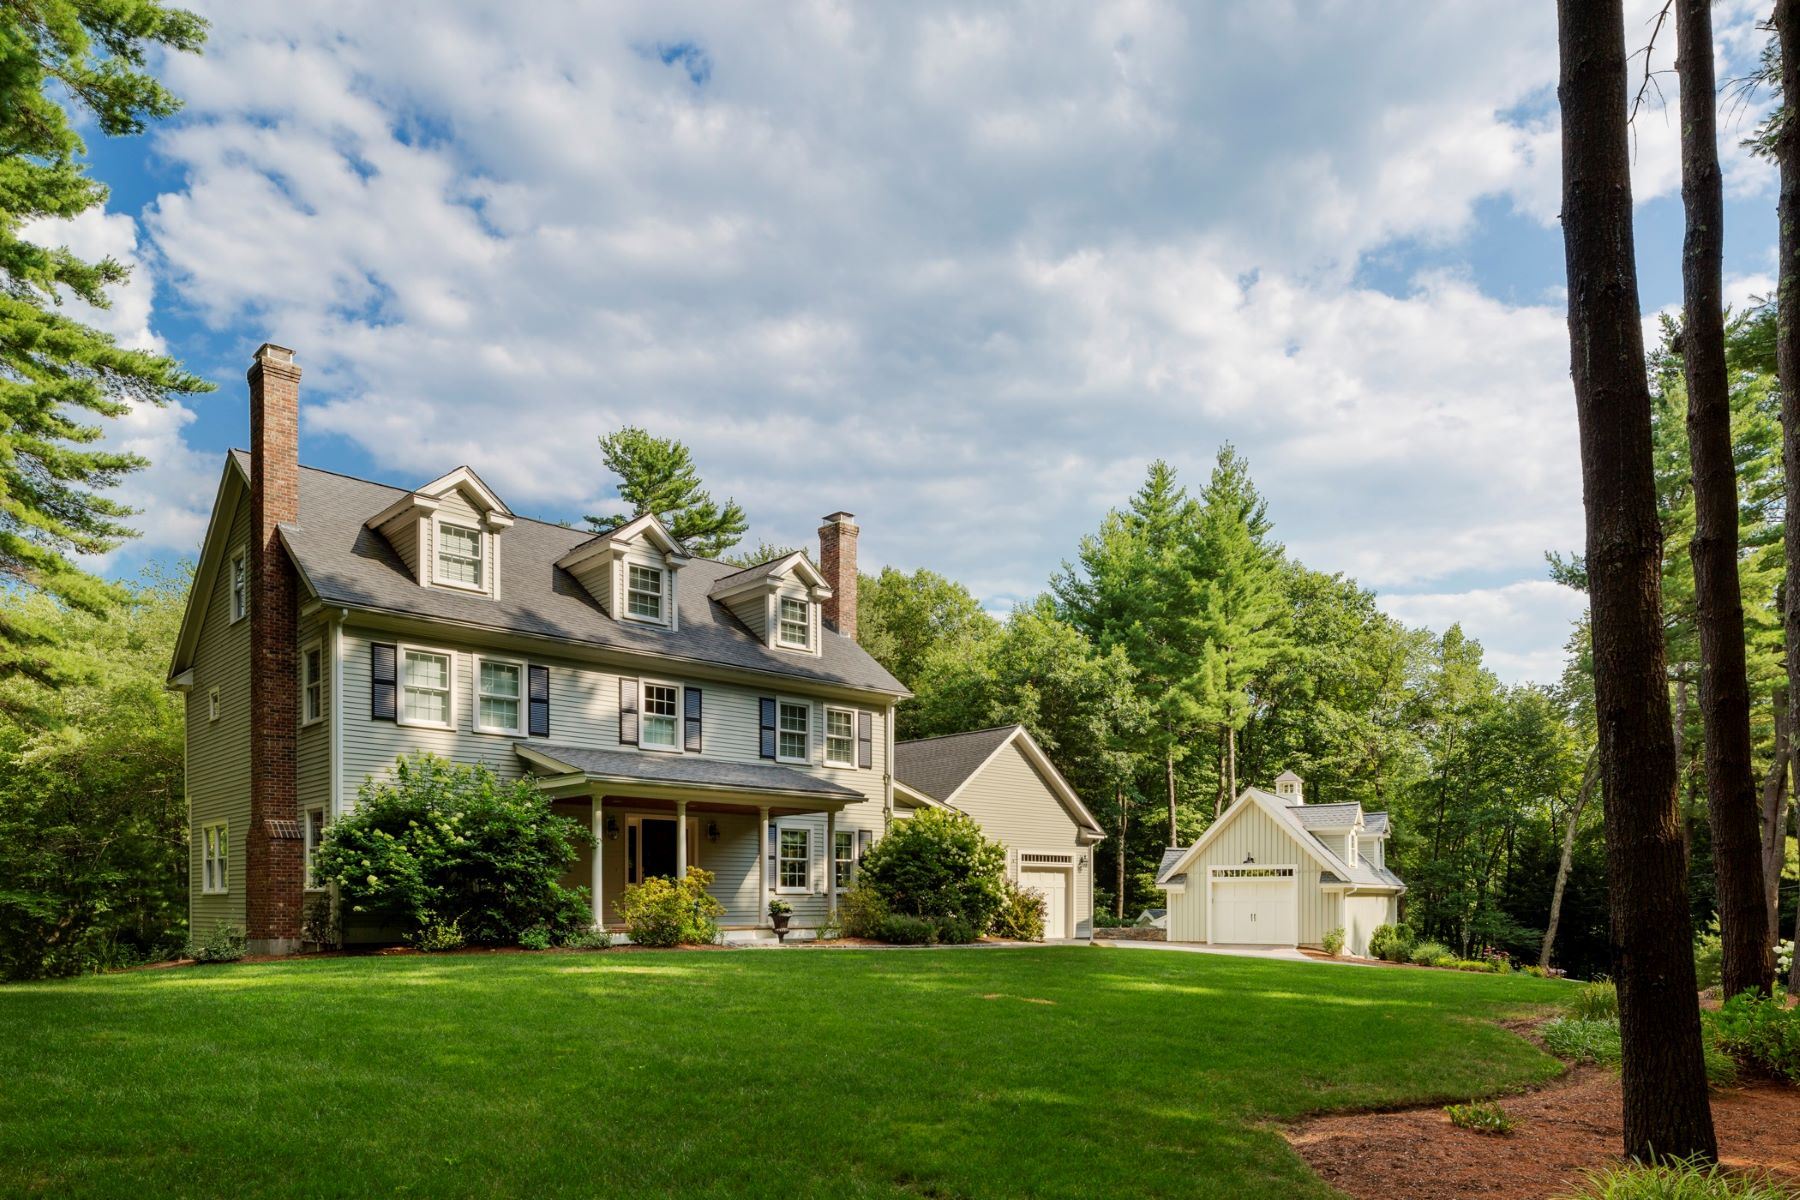 Single Family Home for Sale at Refreshing Elegant Colonial 155 Woodridge Road Carlisle, Massachusetts 01741 United States